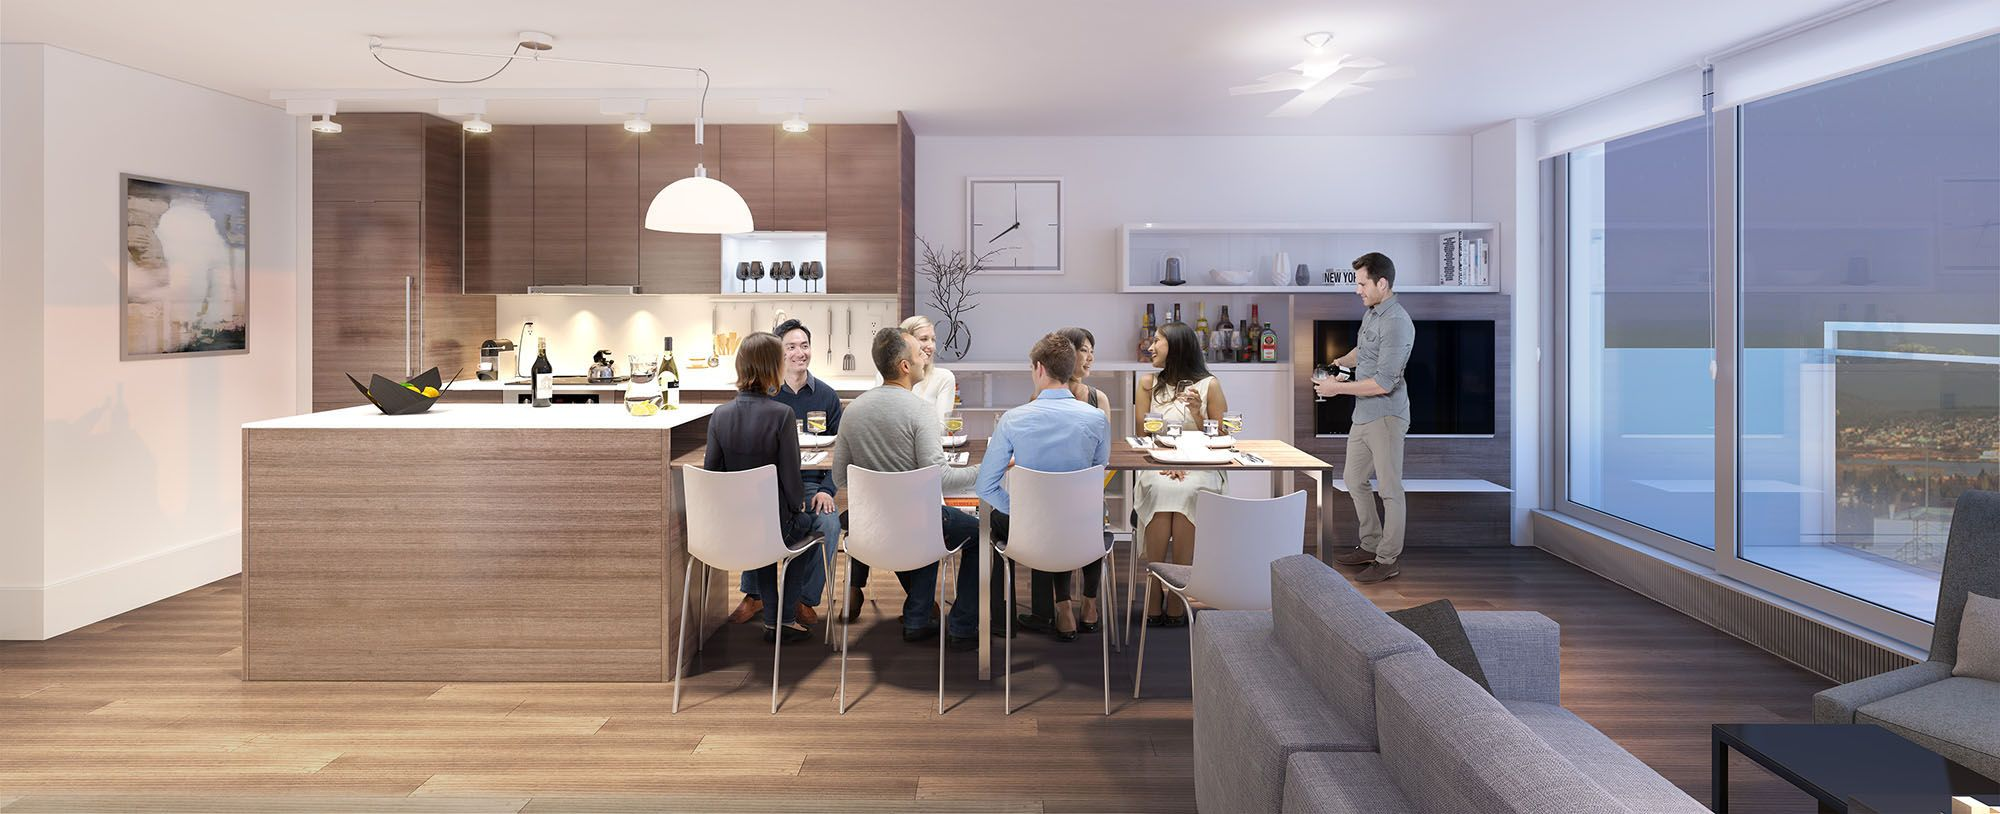 small apartment design and its dining room and open space kitchen - Open Apartment Design